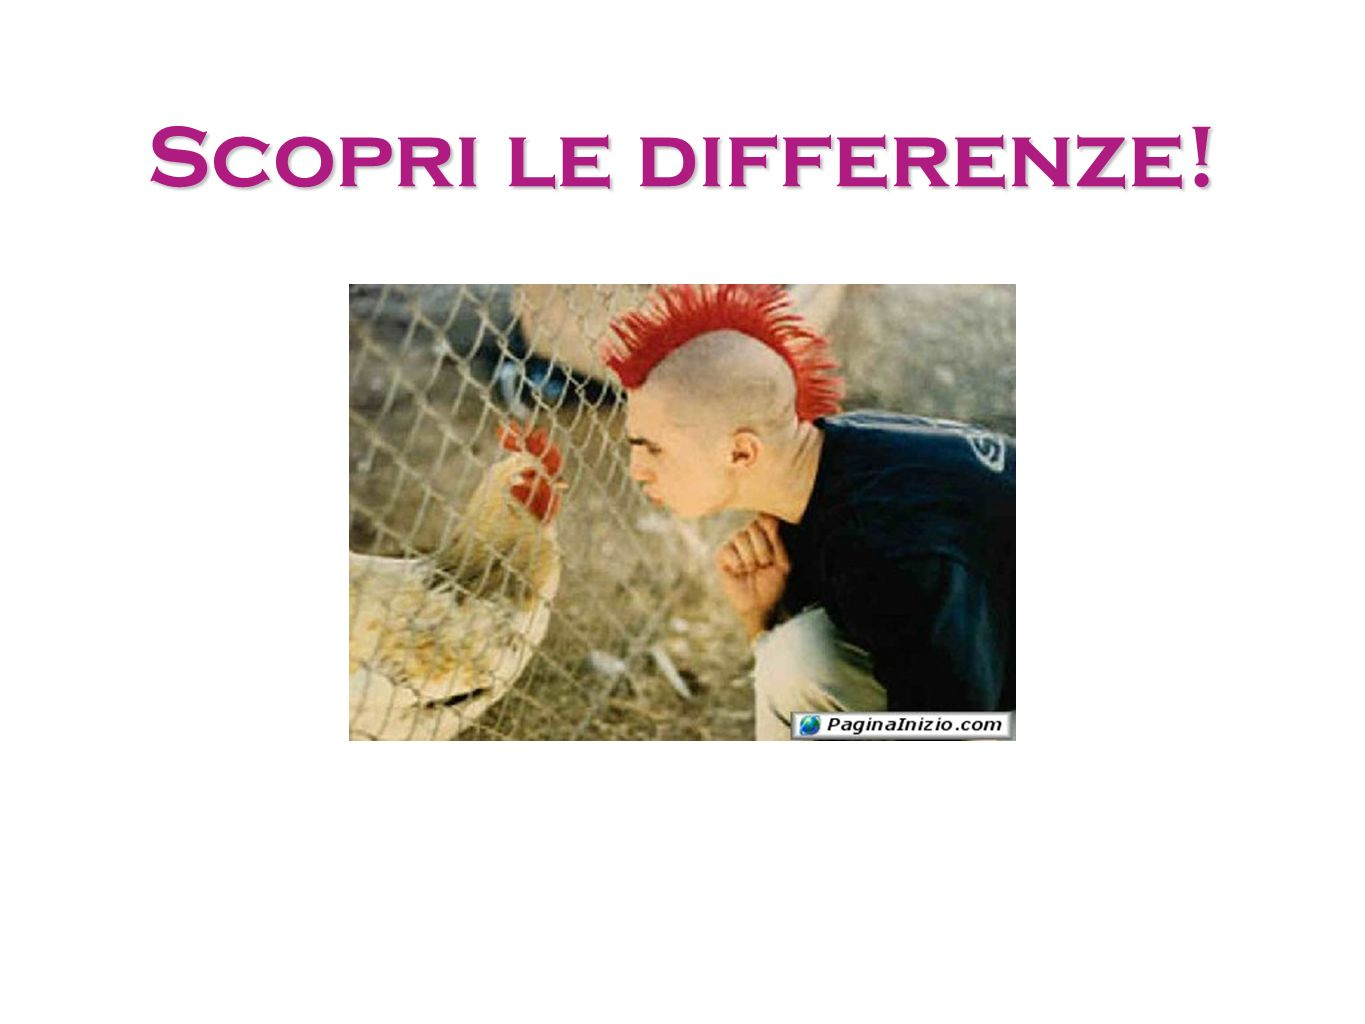 Scopri le differenze!